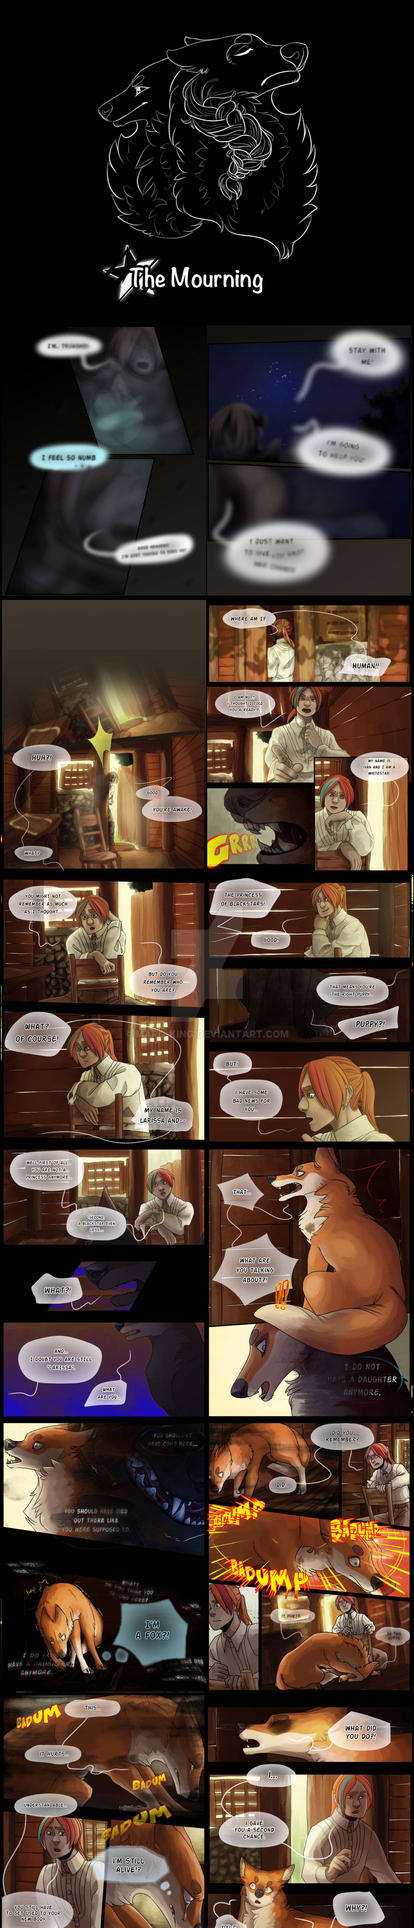 Renovatio Chapter 2: Mourning by Maro-King